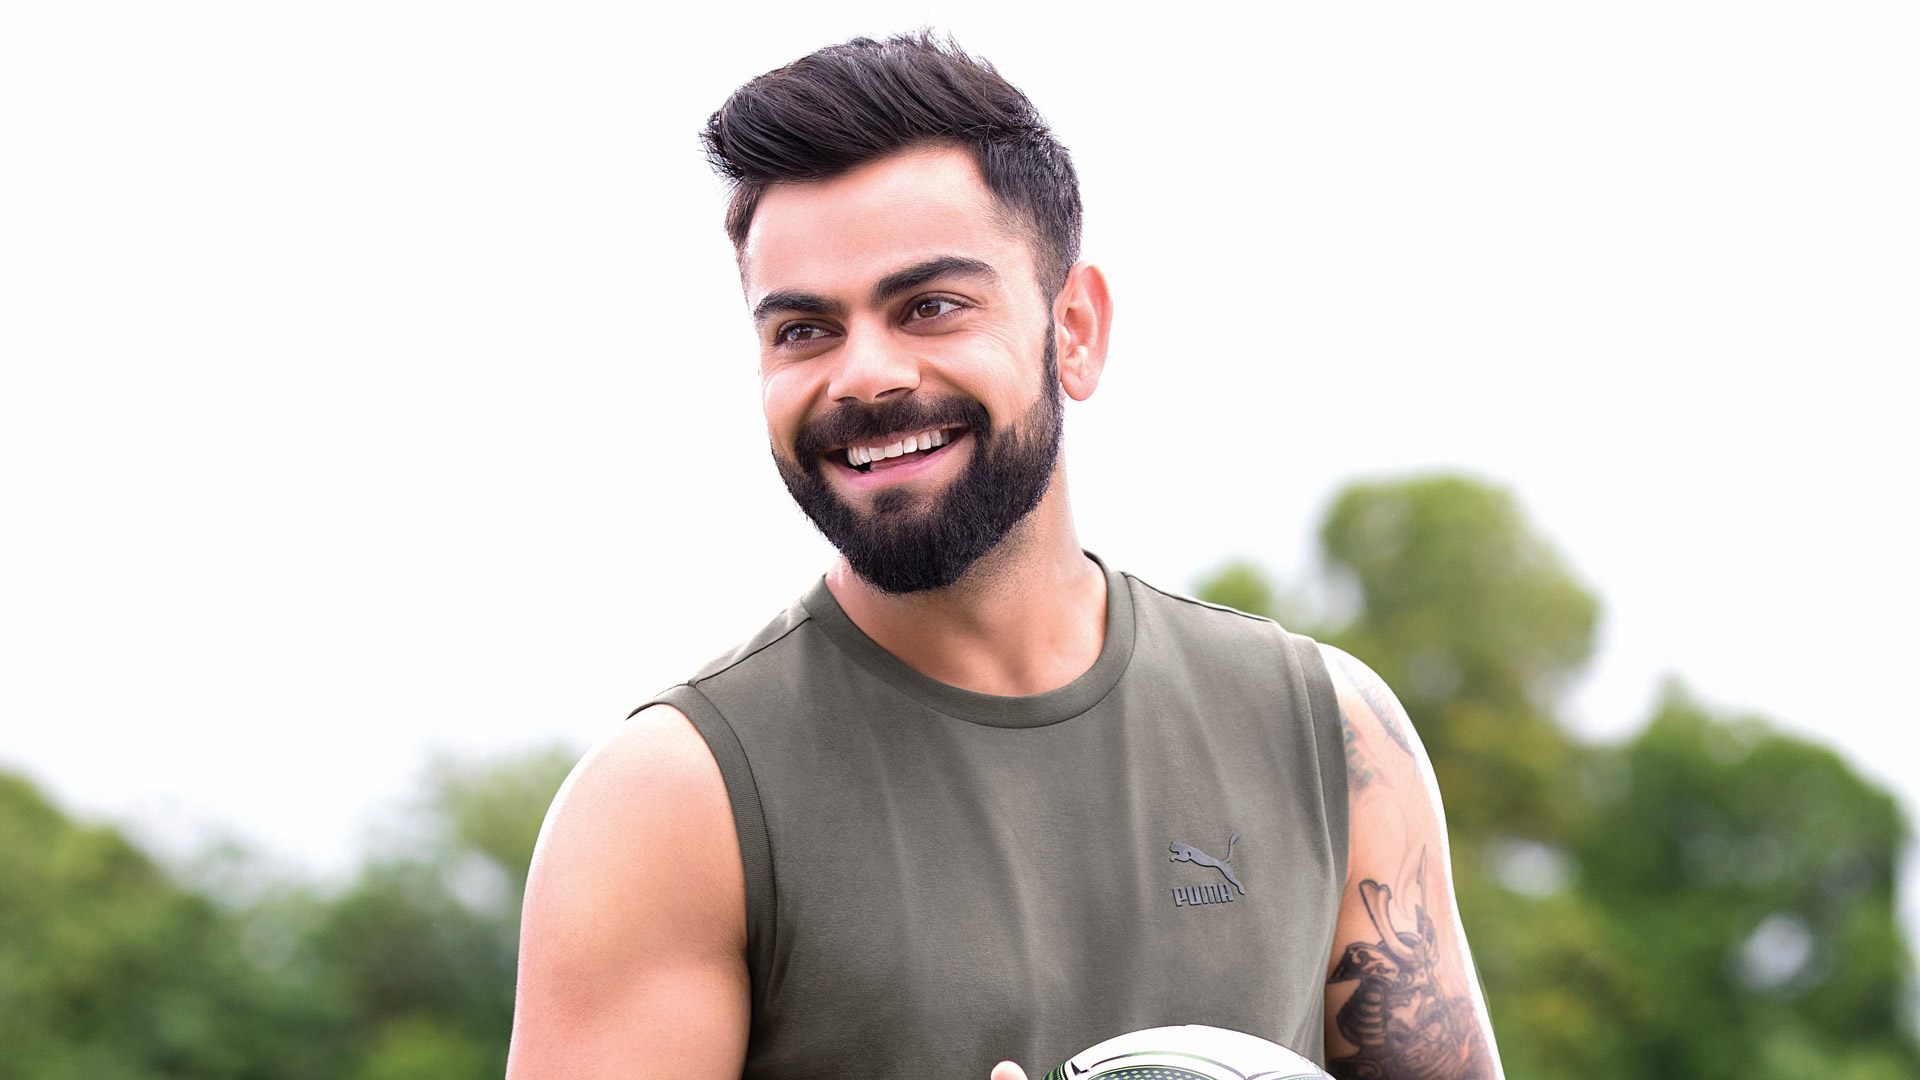 virat kohli is all set to play under new caption – bignews english